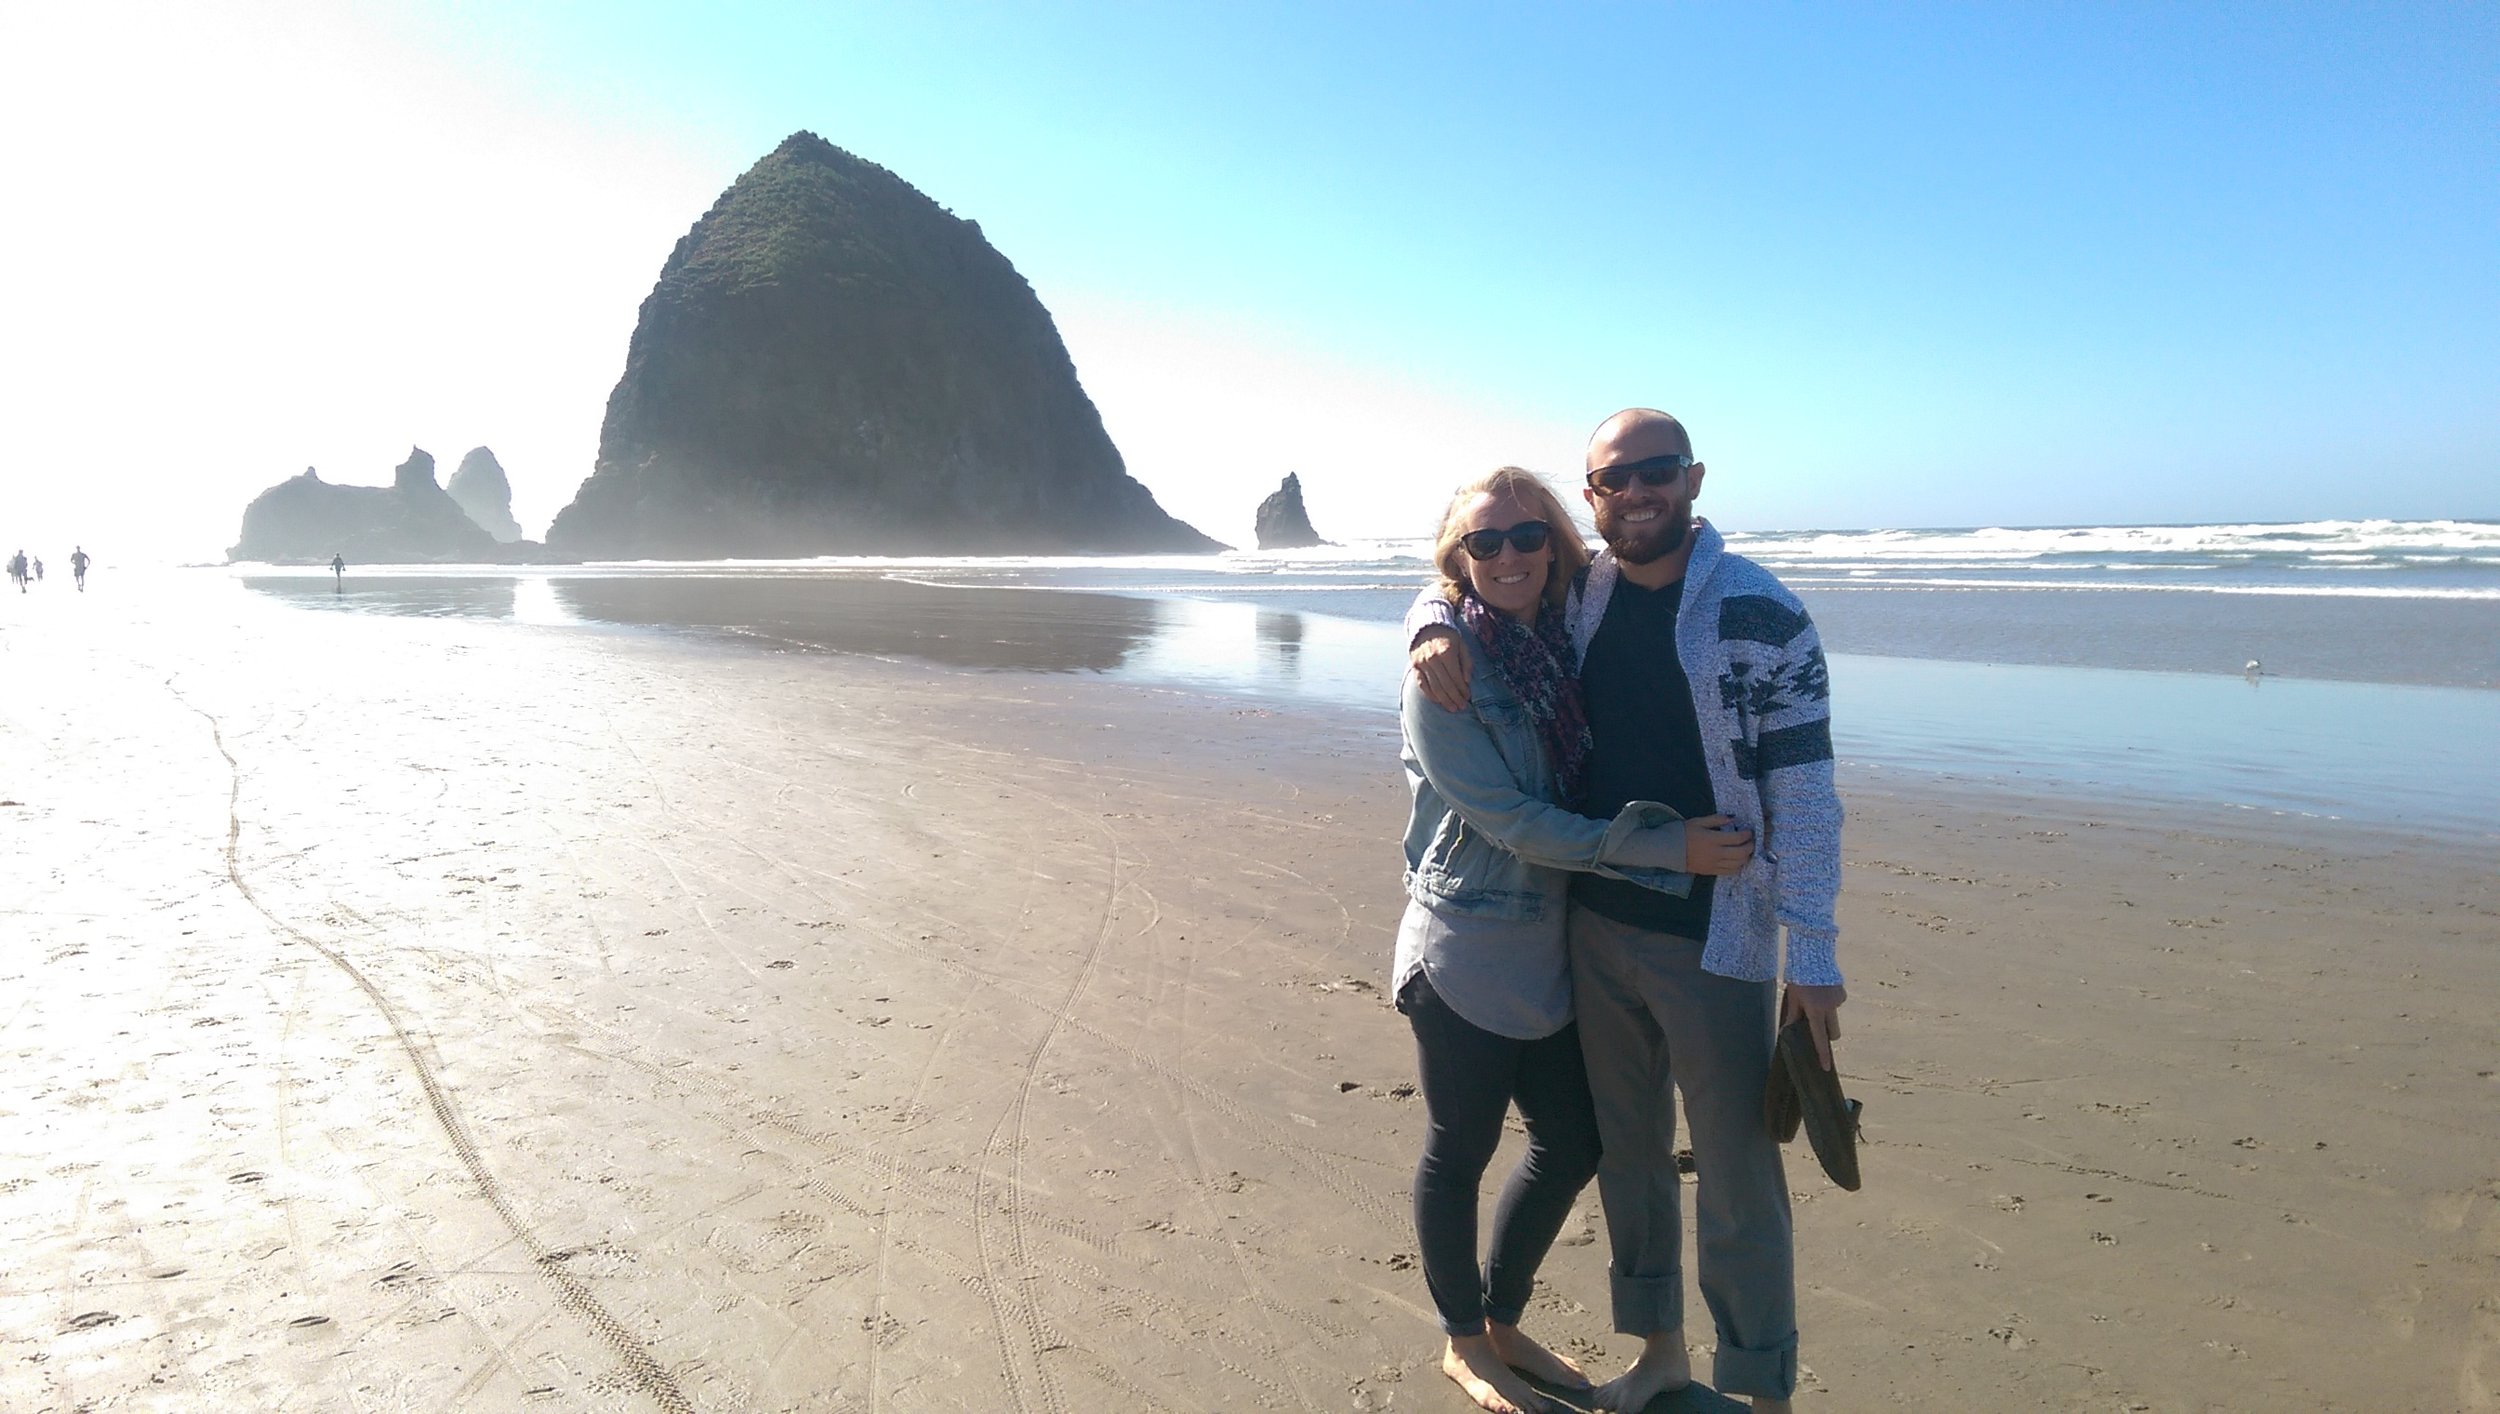 Liz and I again, at Haystack Rock on the Oregon coast